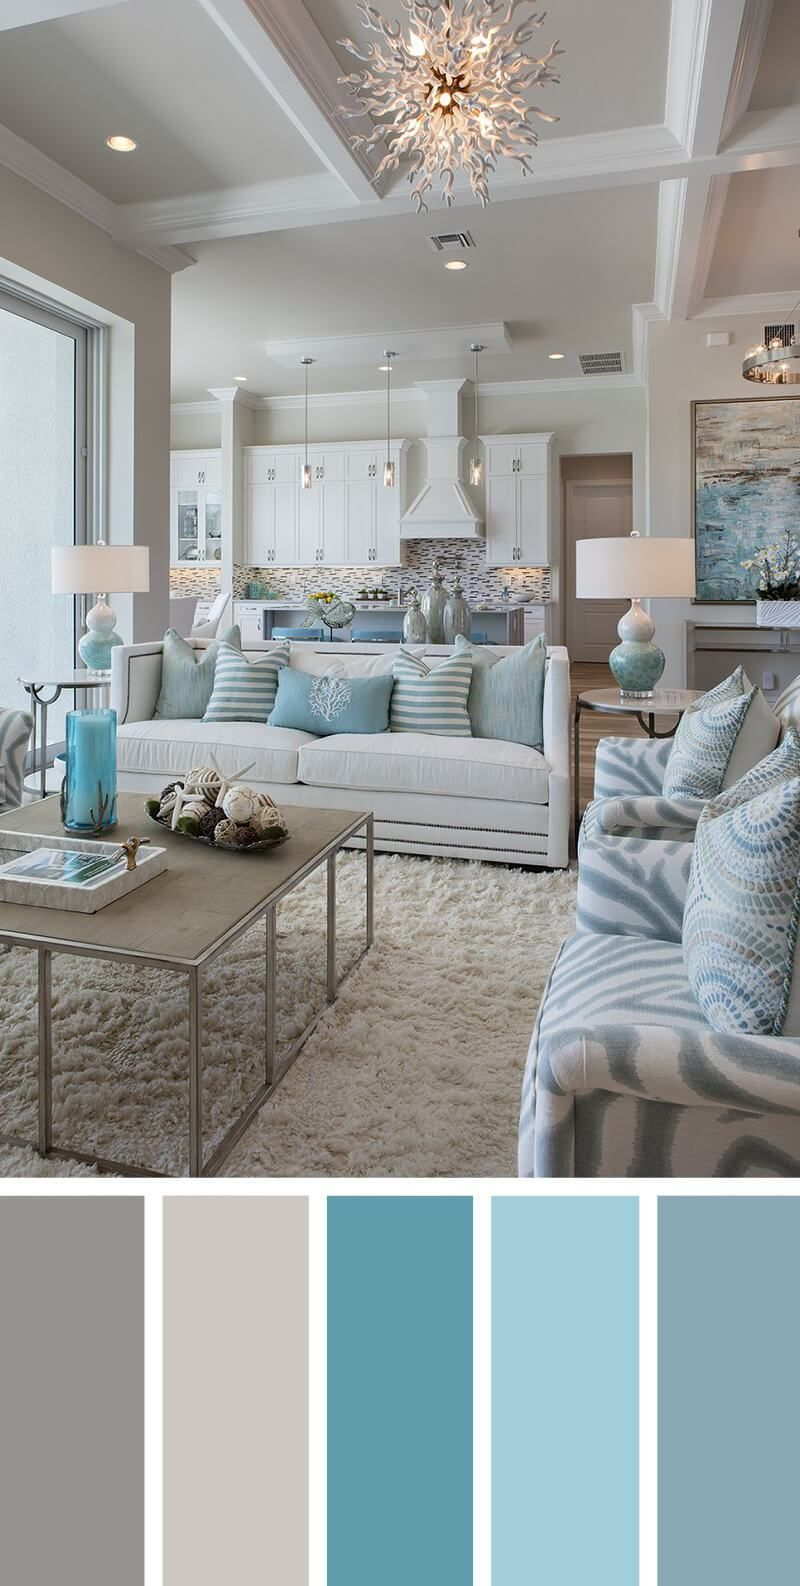 Color Schemes For Rooms 21 Living Room Color Schemes That Express Yourself Coastal